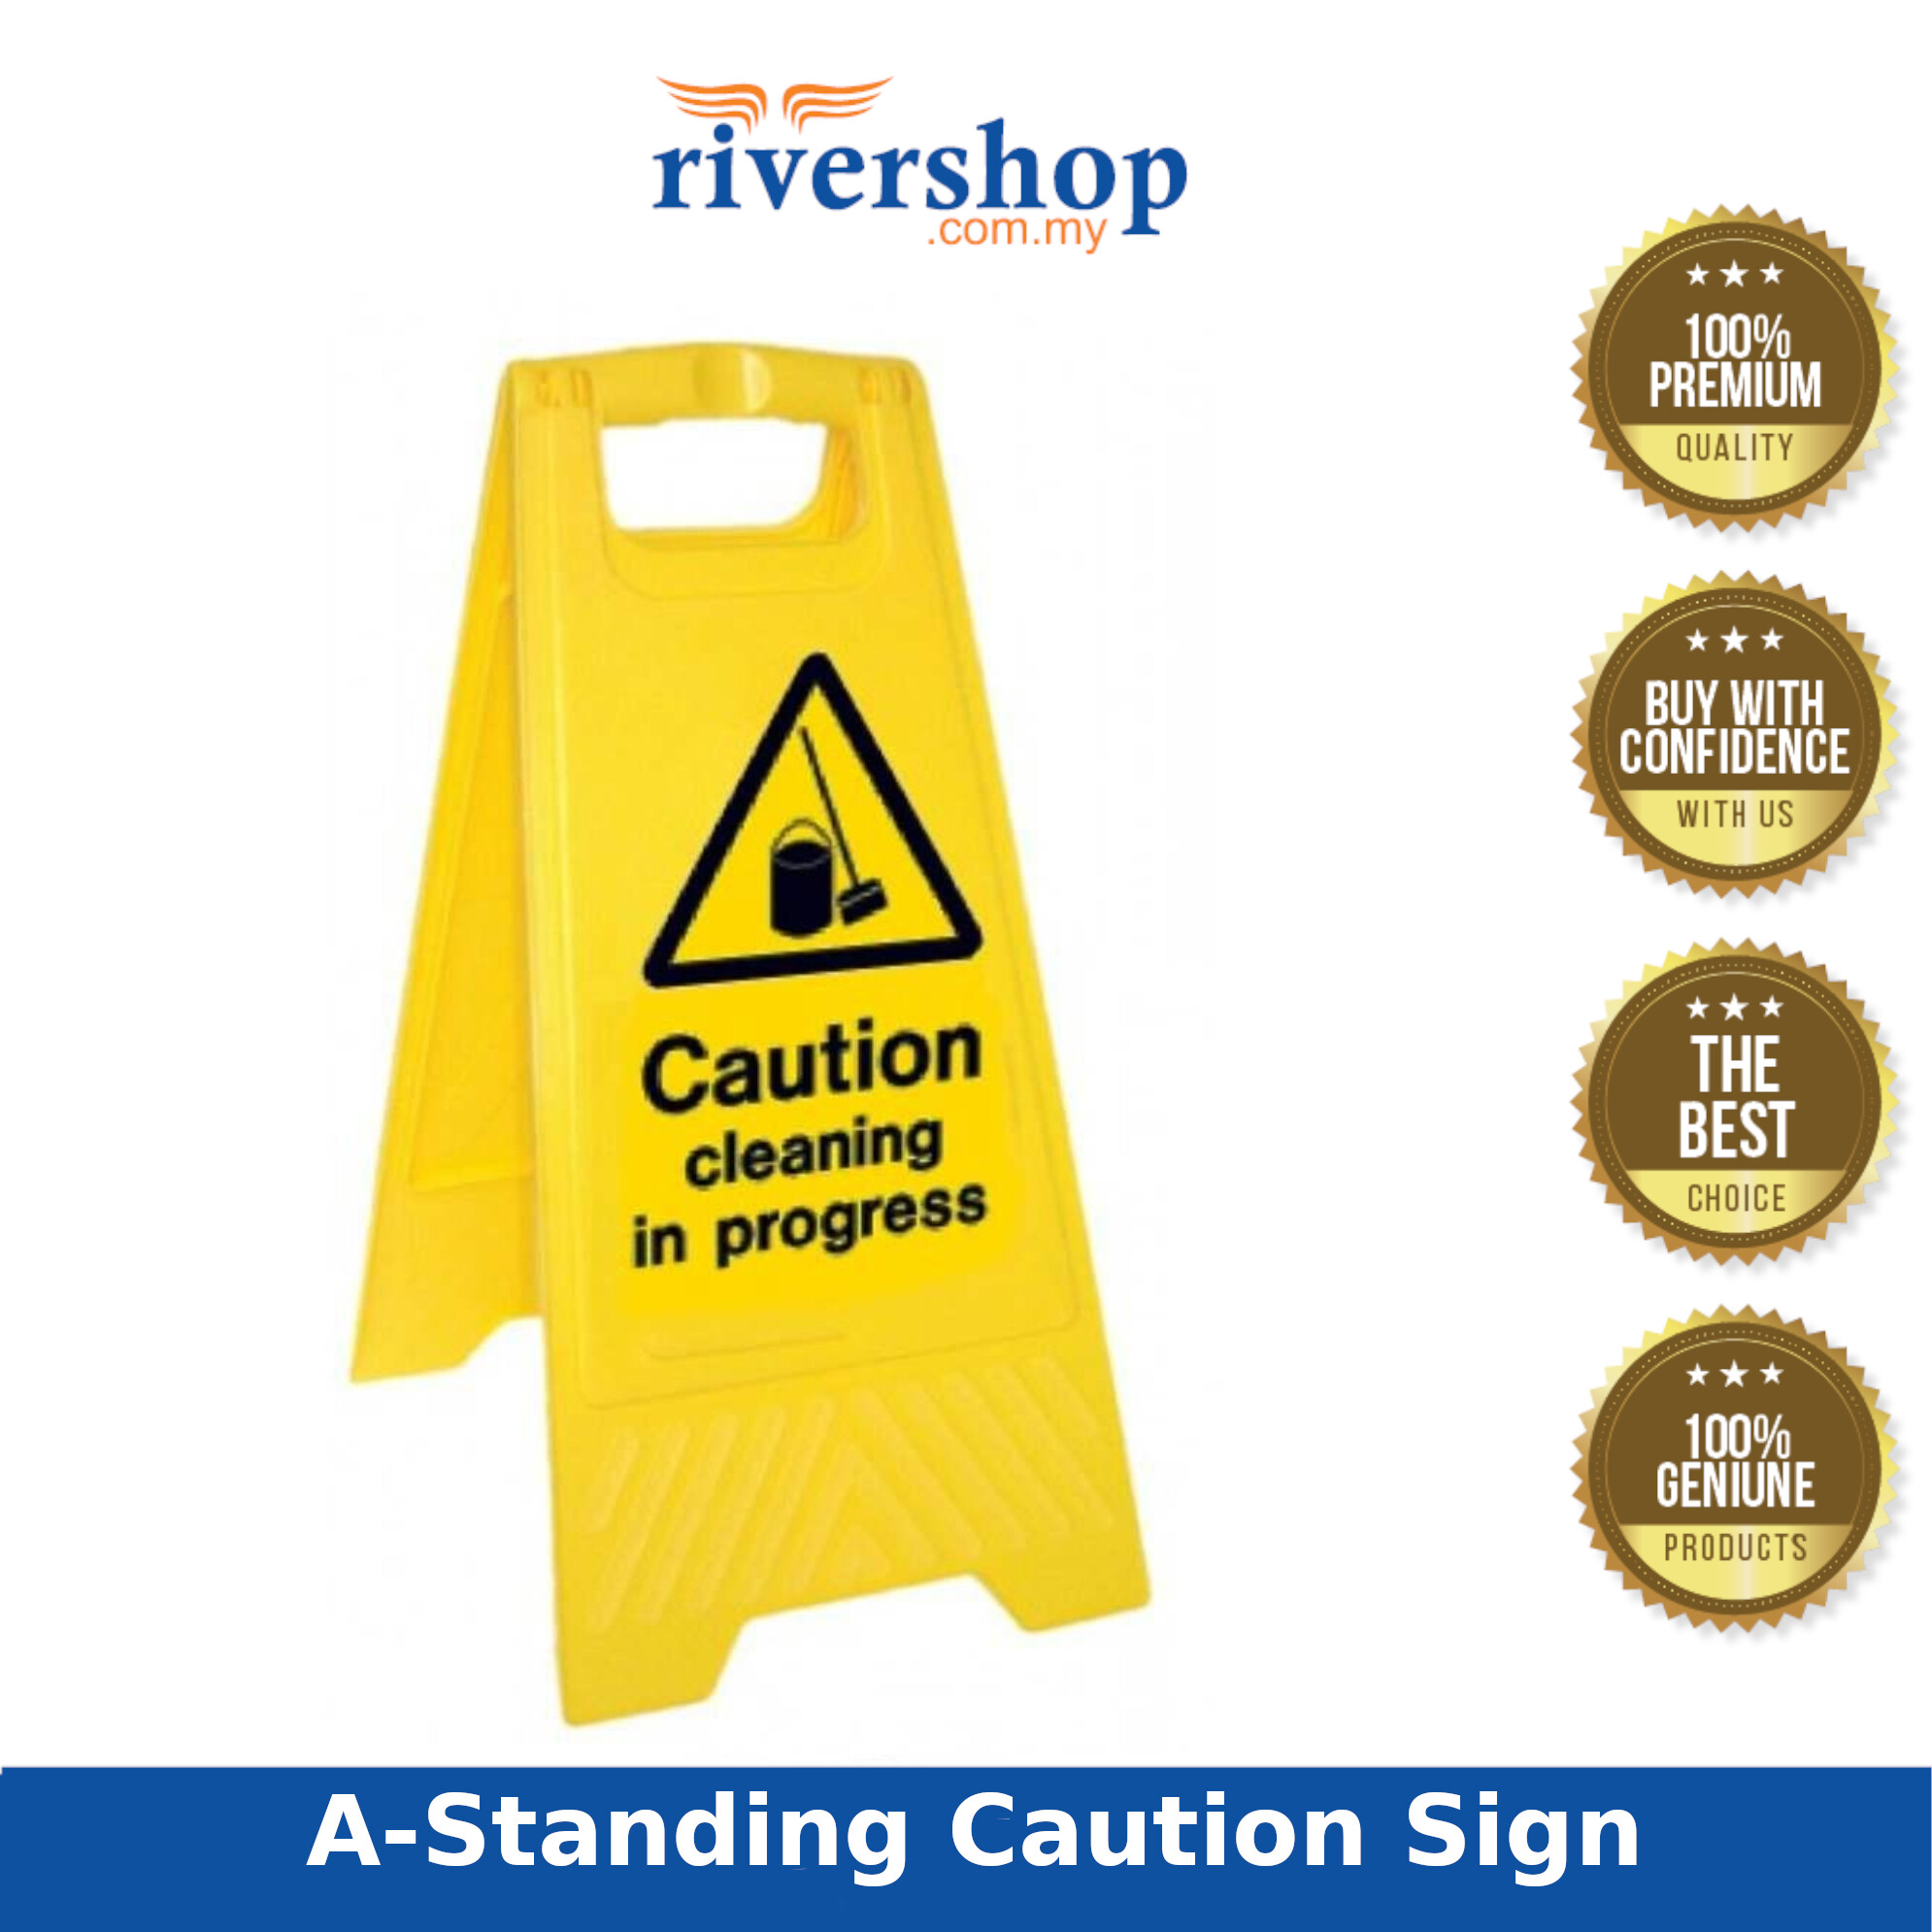 A-Standing Caution Sign / Yellow Foldable Floor Sign Board Stand / Caution Sign Board / Industrial Floor Signage - Cleaning In Progress